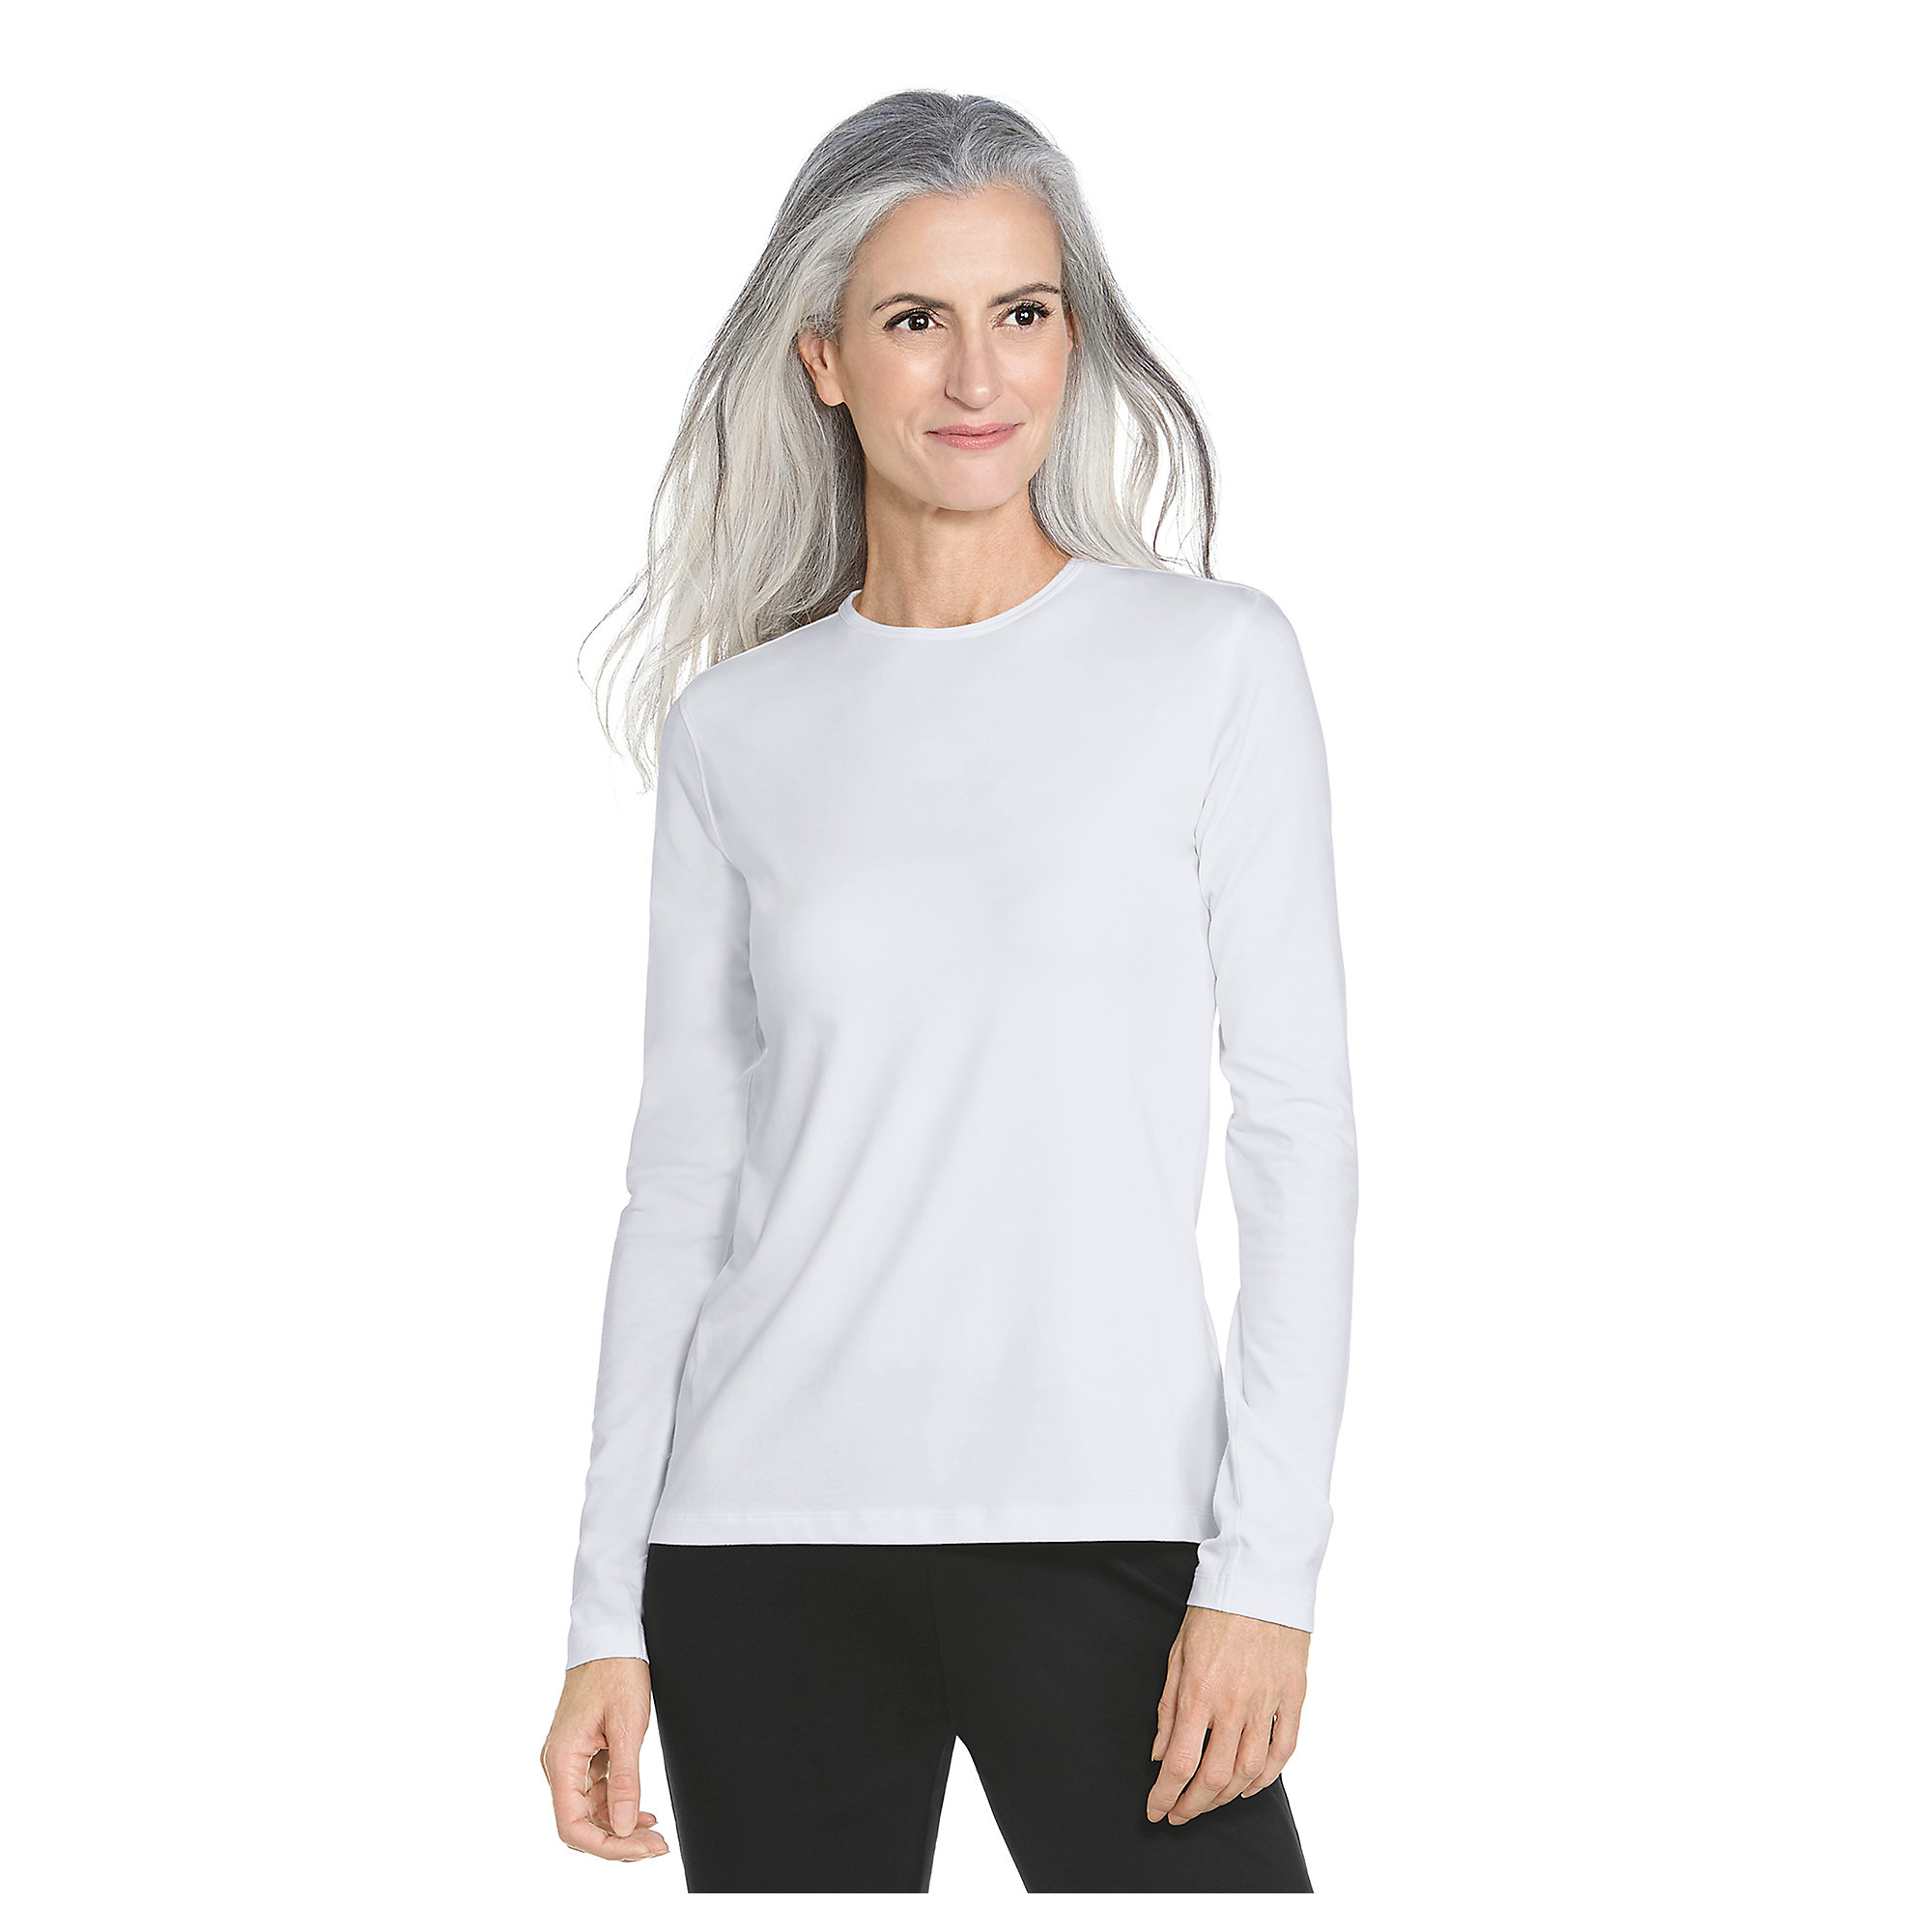 coolibar upf 50 women 39 s long sleeve t shirt sun